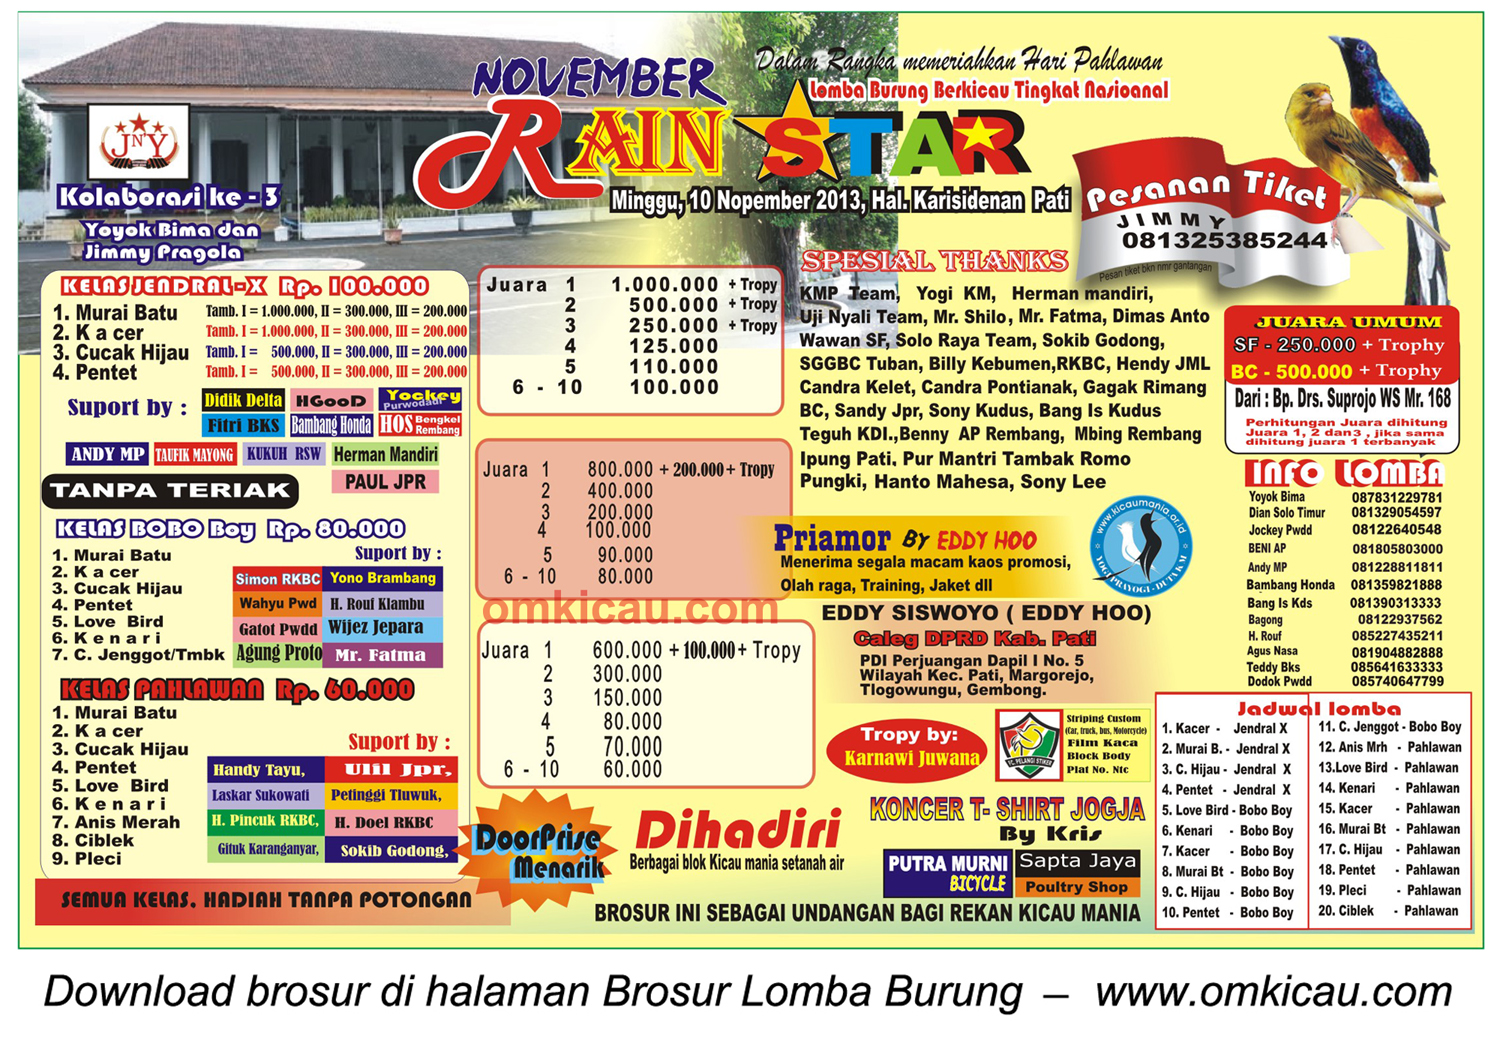 Brosur Lomba Burung November Rain Star, Pati, 10 November 2013